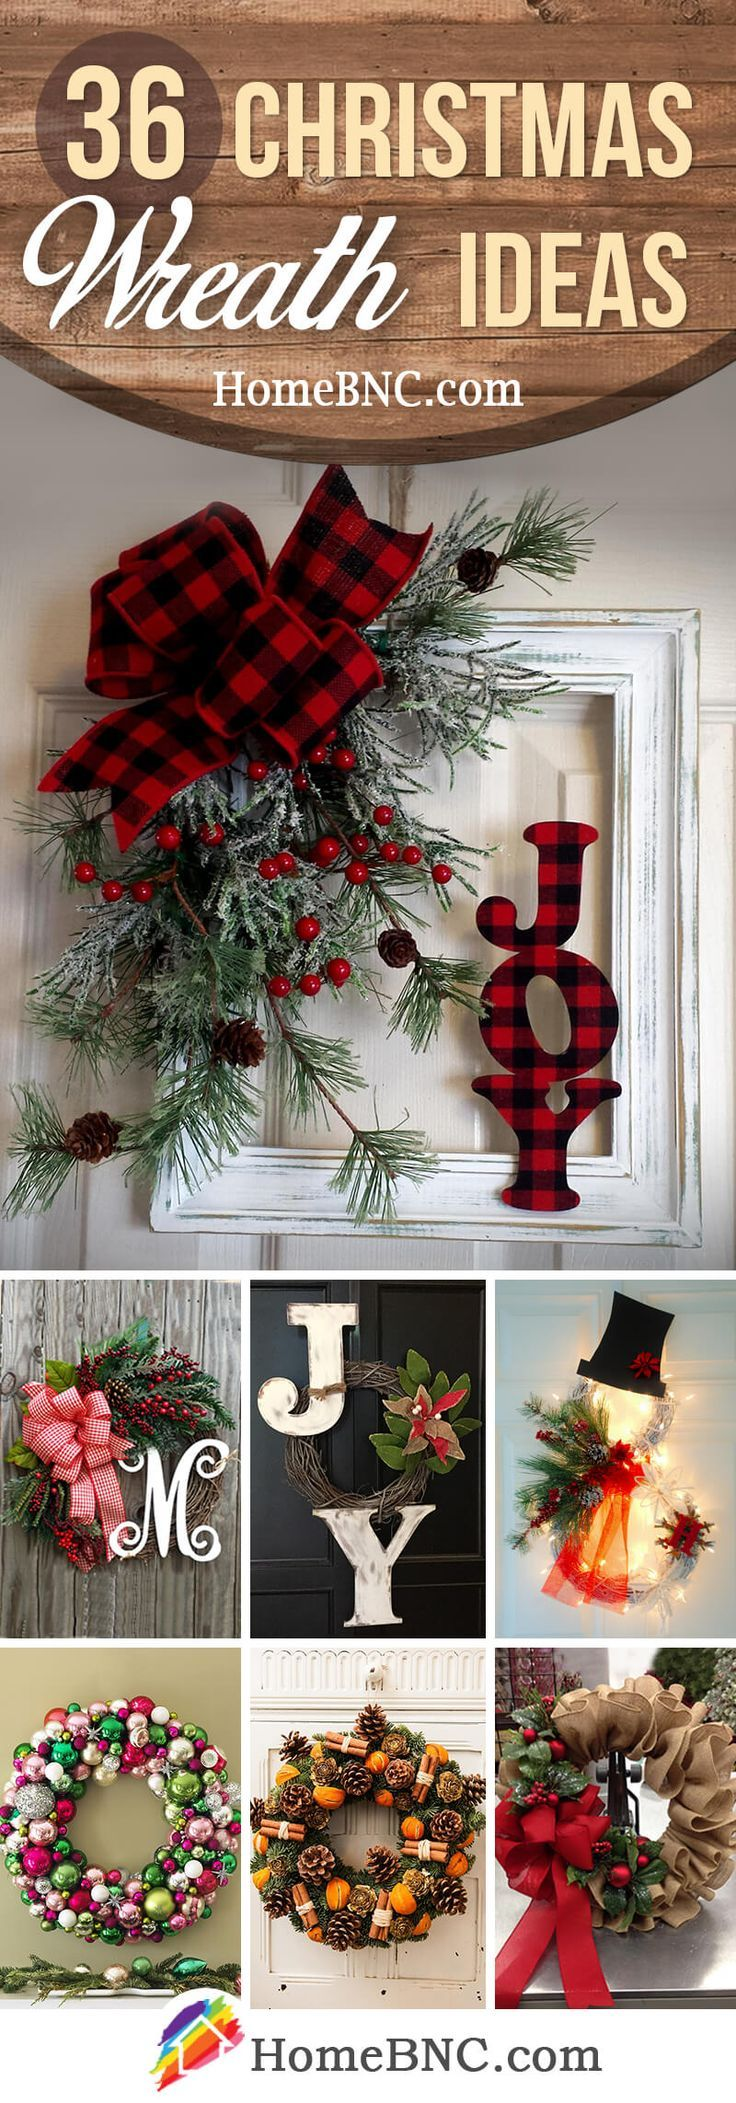 Christmas Wreath Ideas Holiday Christmas Project Idea Project Complexity: Medi…